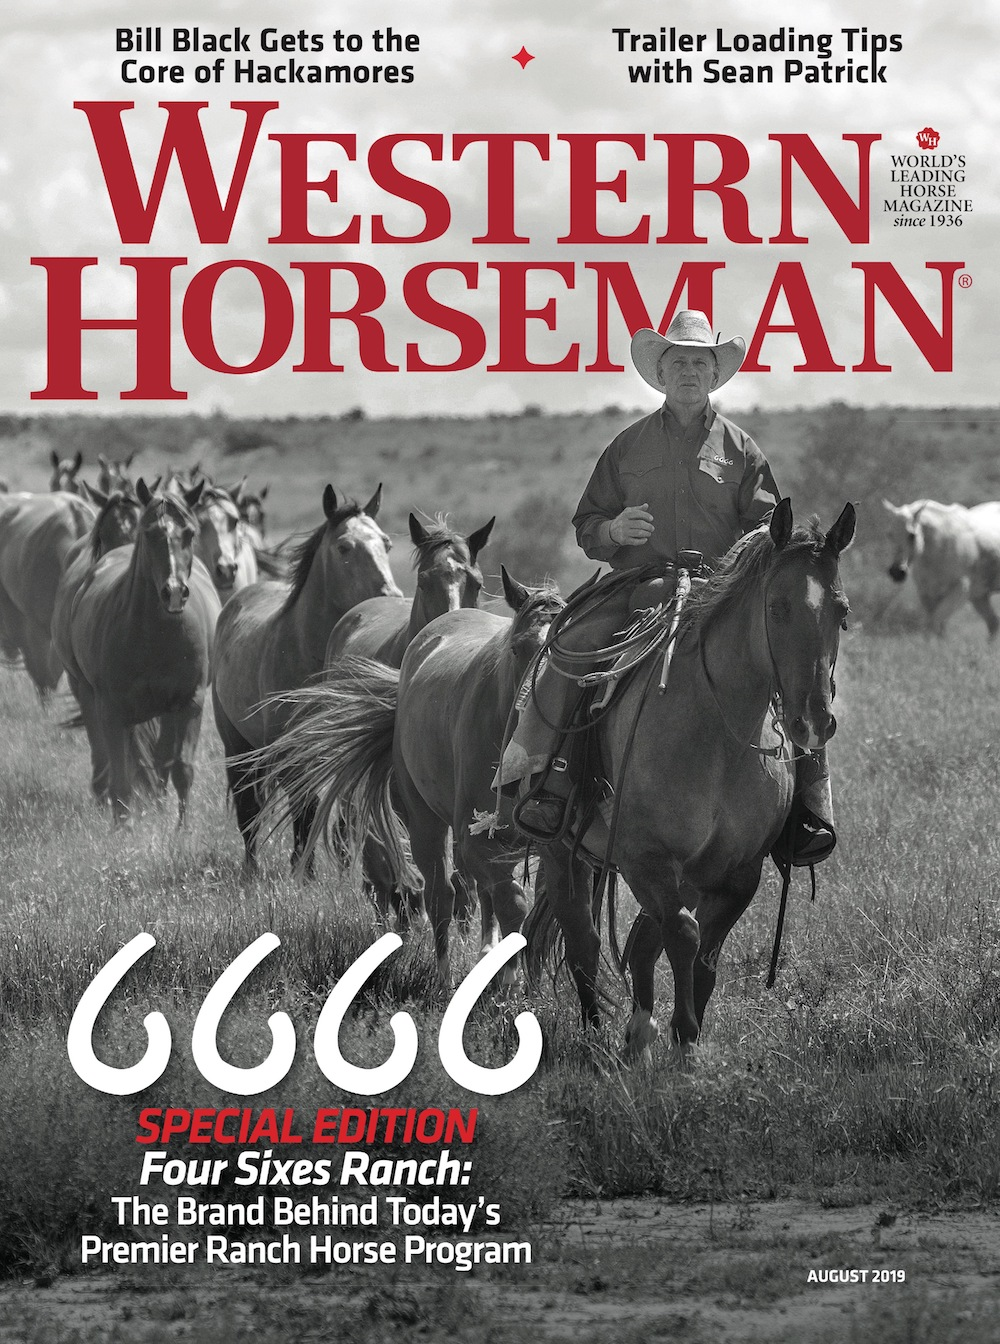 Western Horseman magazine cover July 2019 6666 Ranch issue